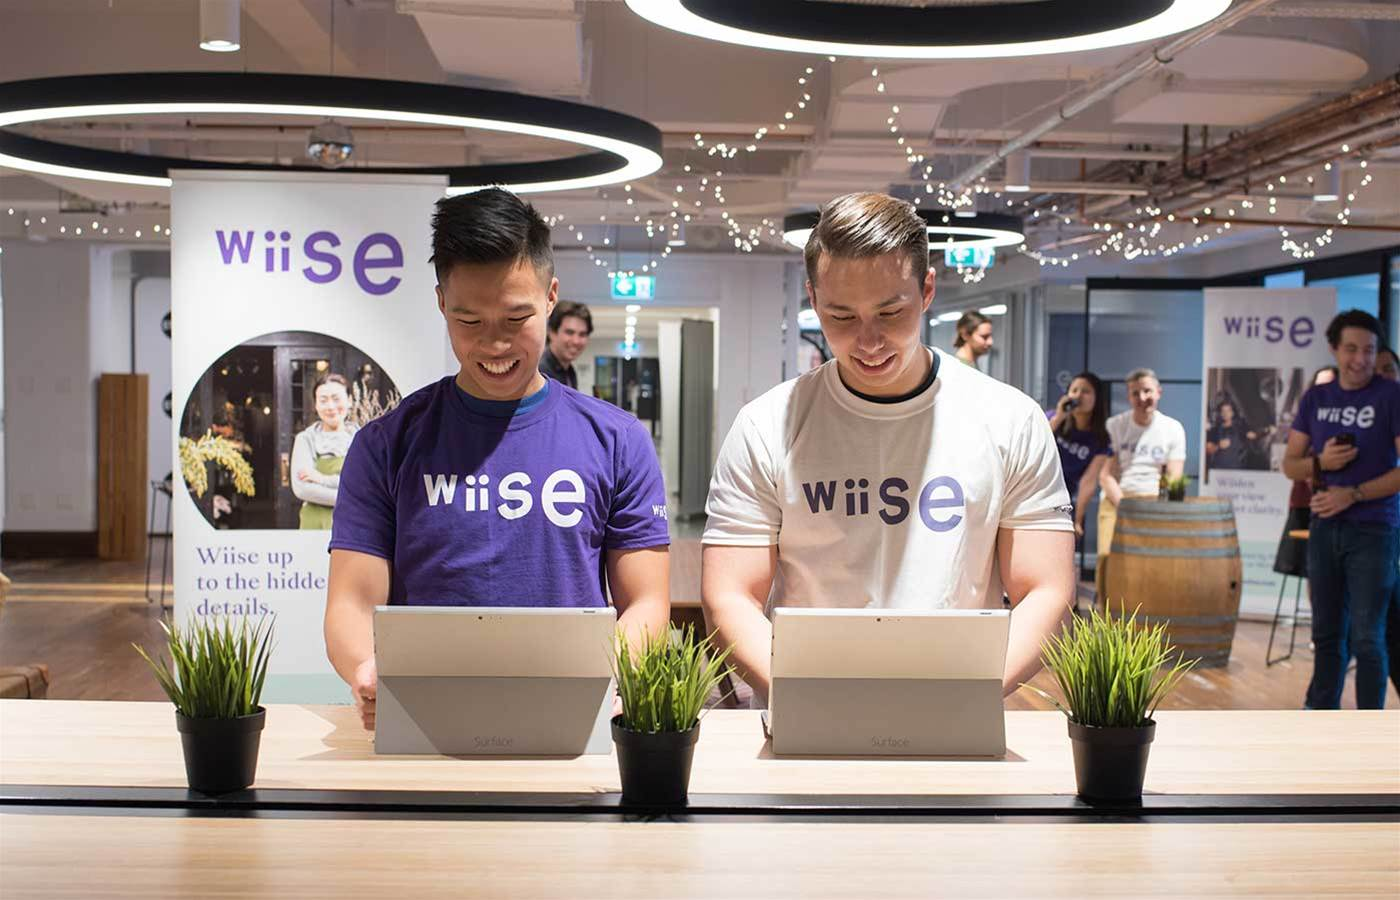 rhipe named first distie for Microsoft-powered Wiise